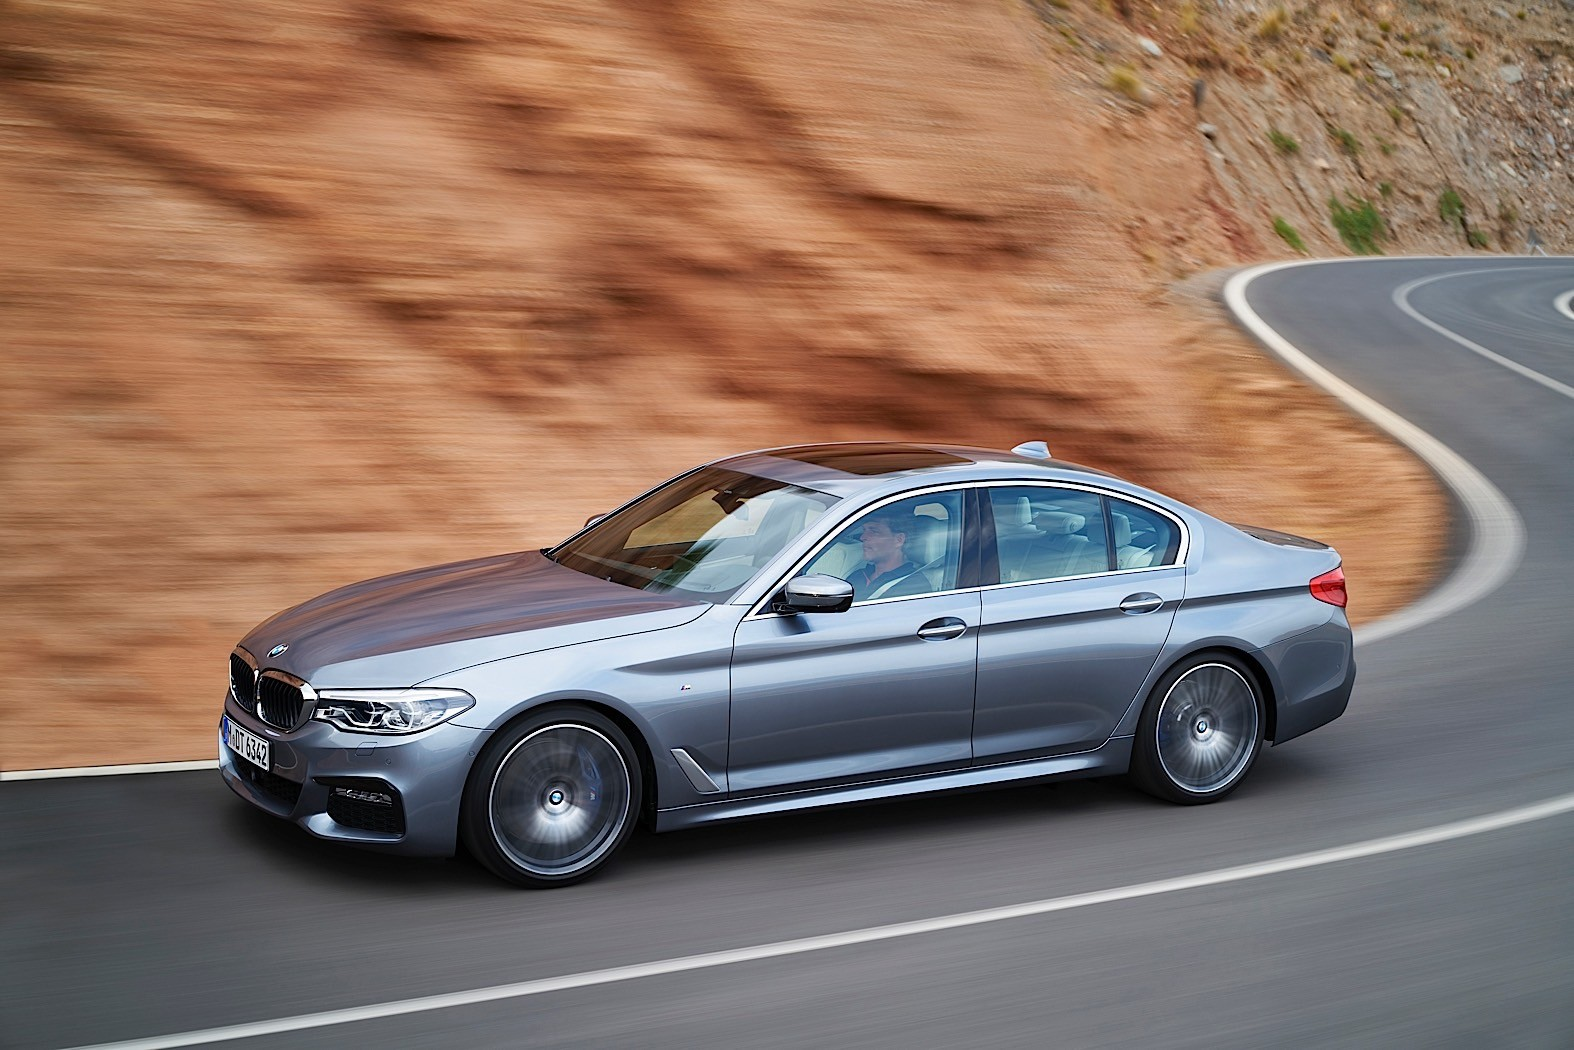 2017 BMW 5 Series Price Announced in Germany, 520d Starts